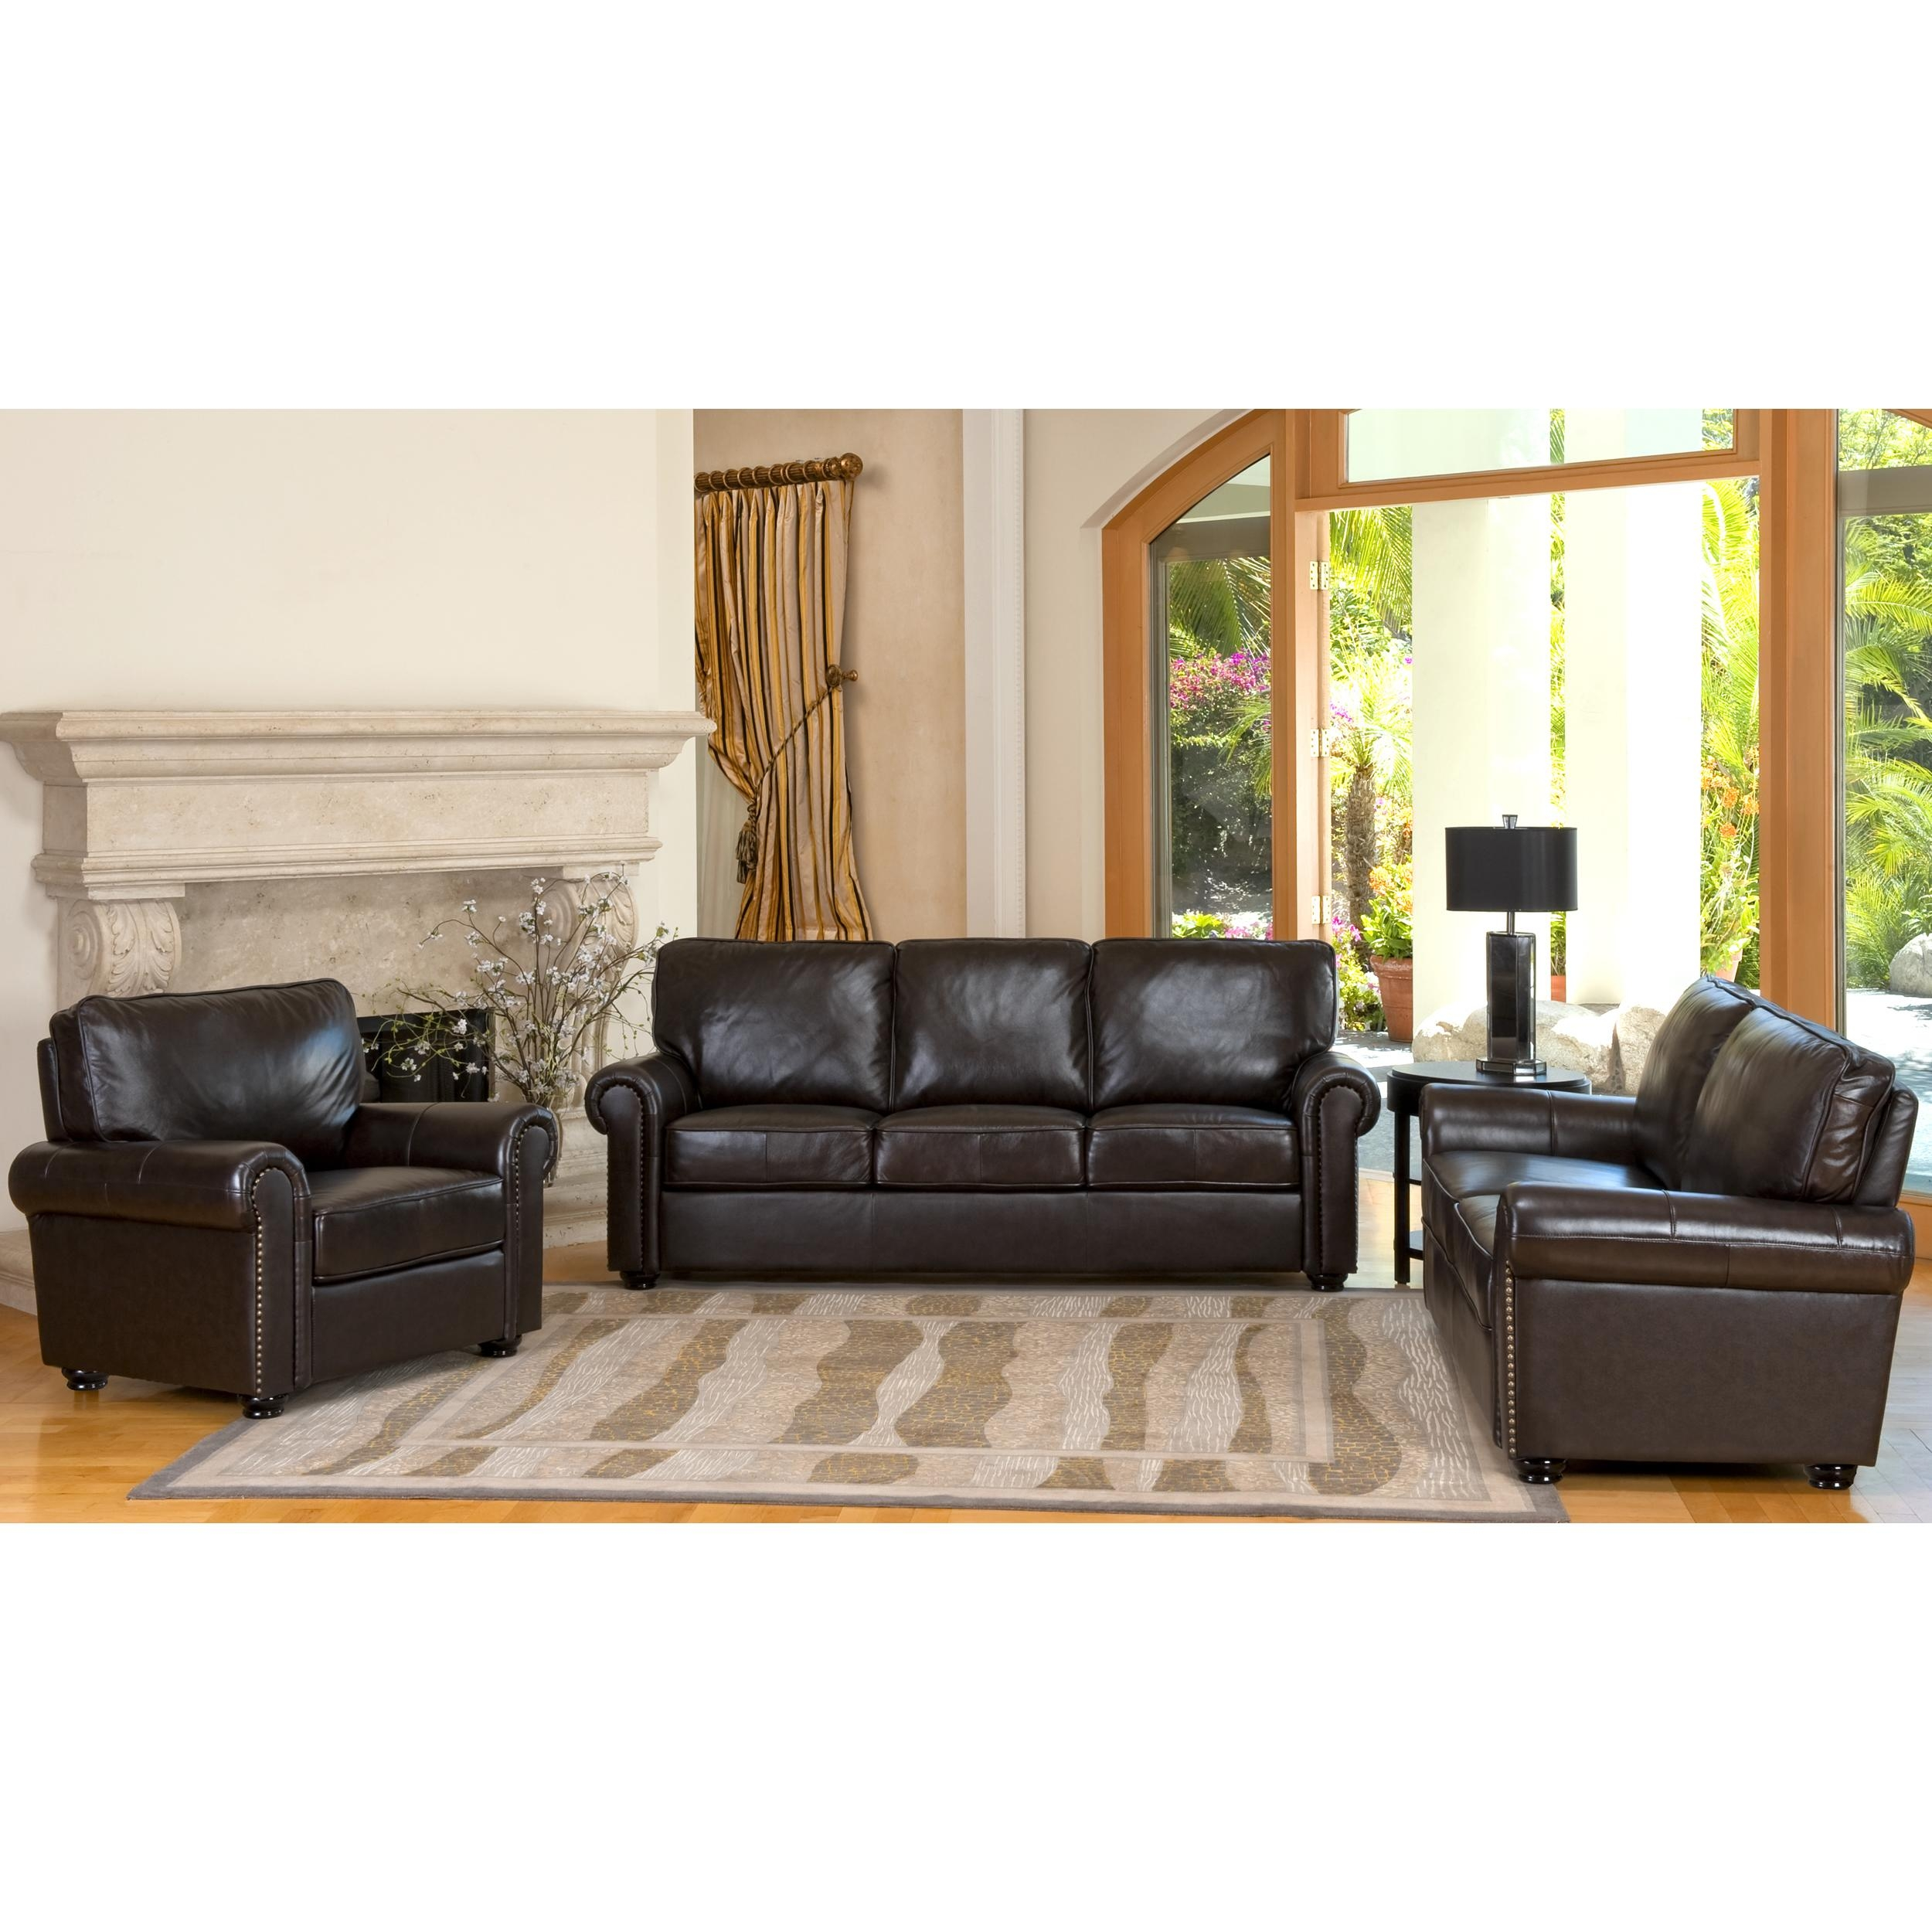 Sofas Center : 42 Excellent Abbyson Living Sofa Photo Concept With Abbyson Sofas (Image 16 of 20)